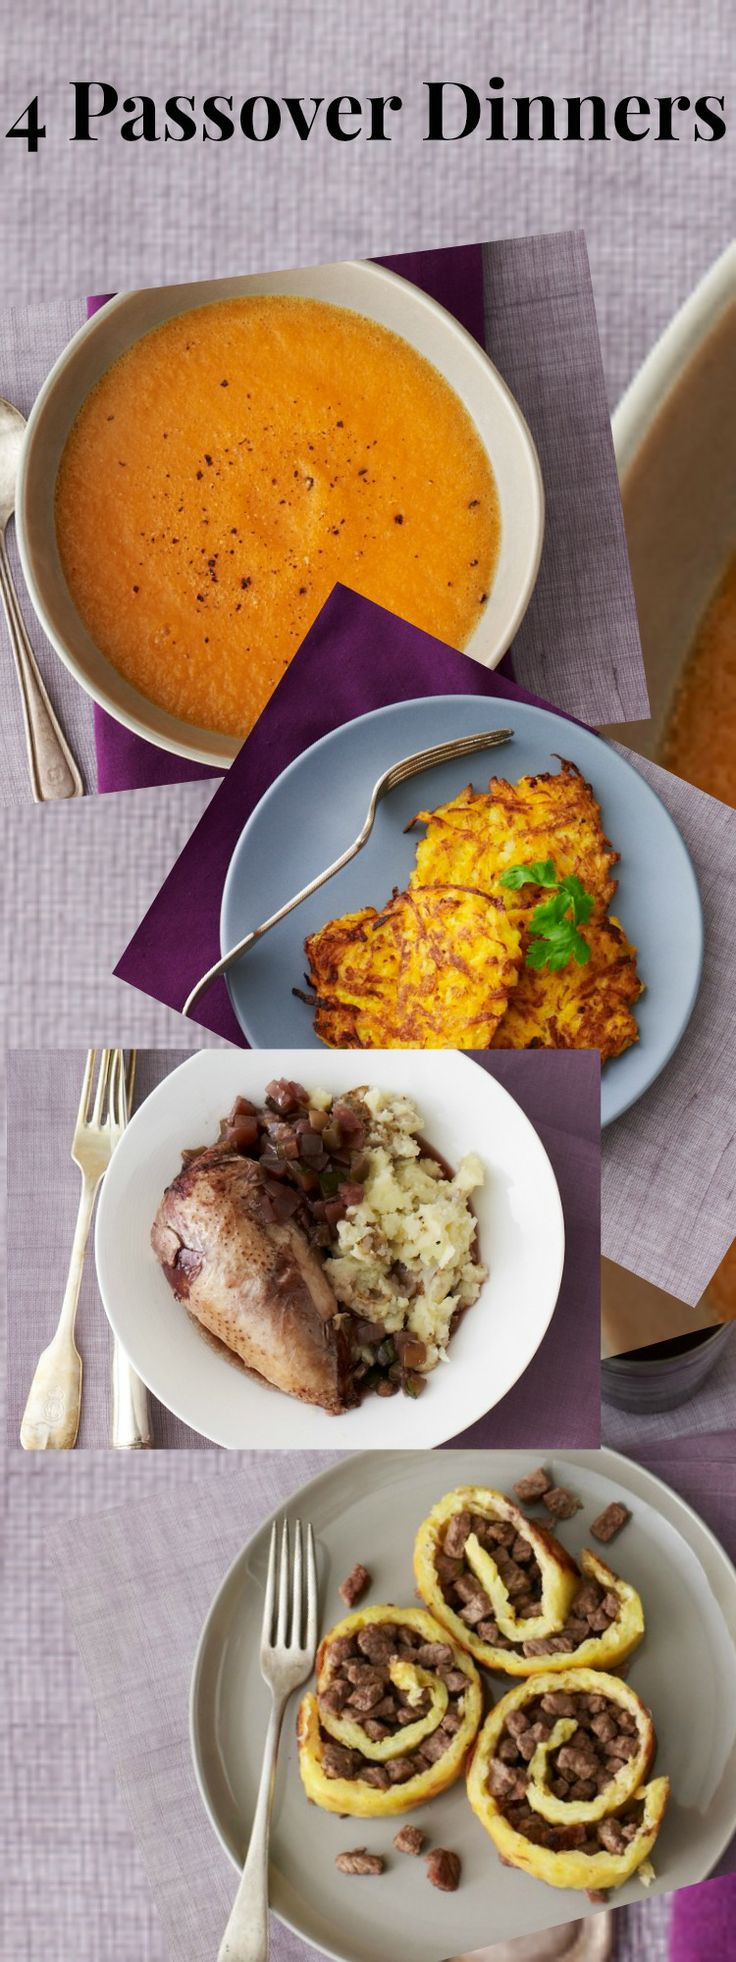 Passover Dinner Recipes  147 best images about Recipes unleavened on Pinterest